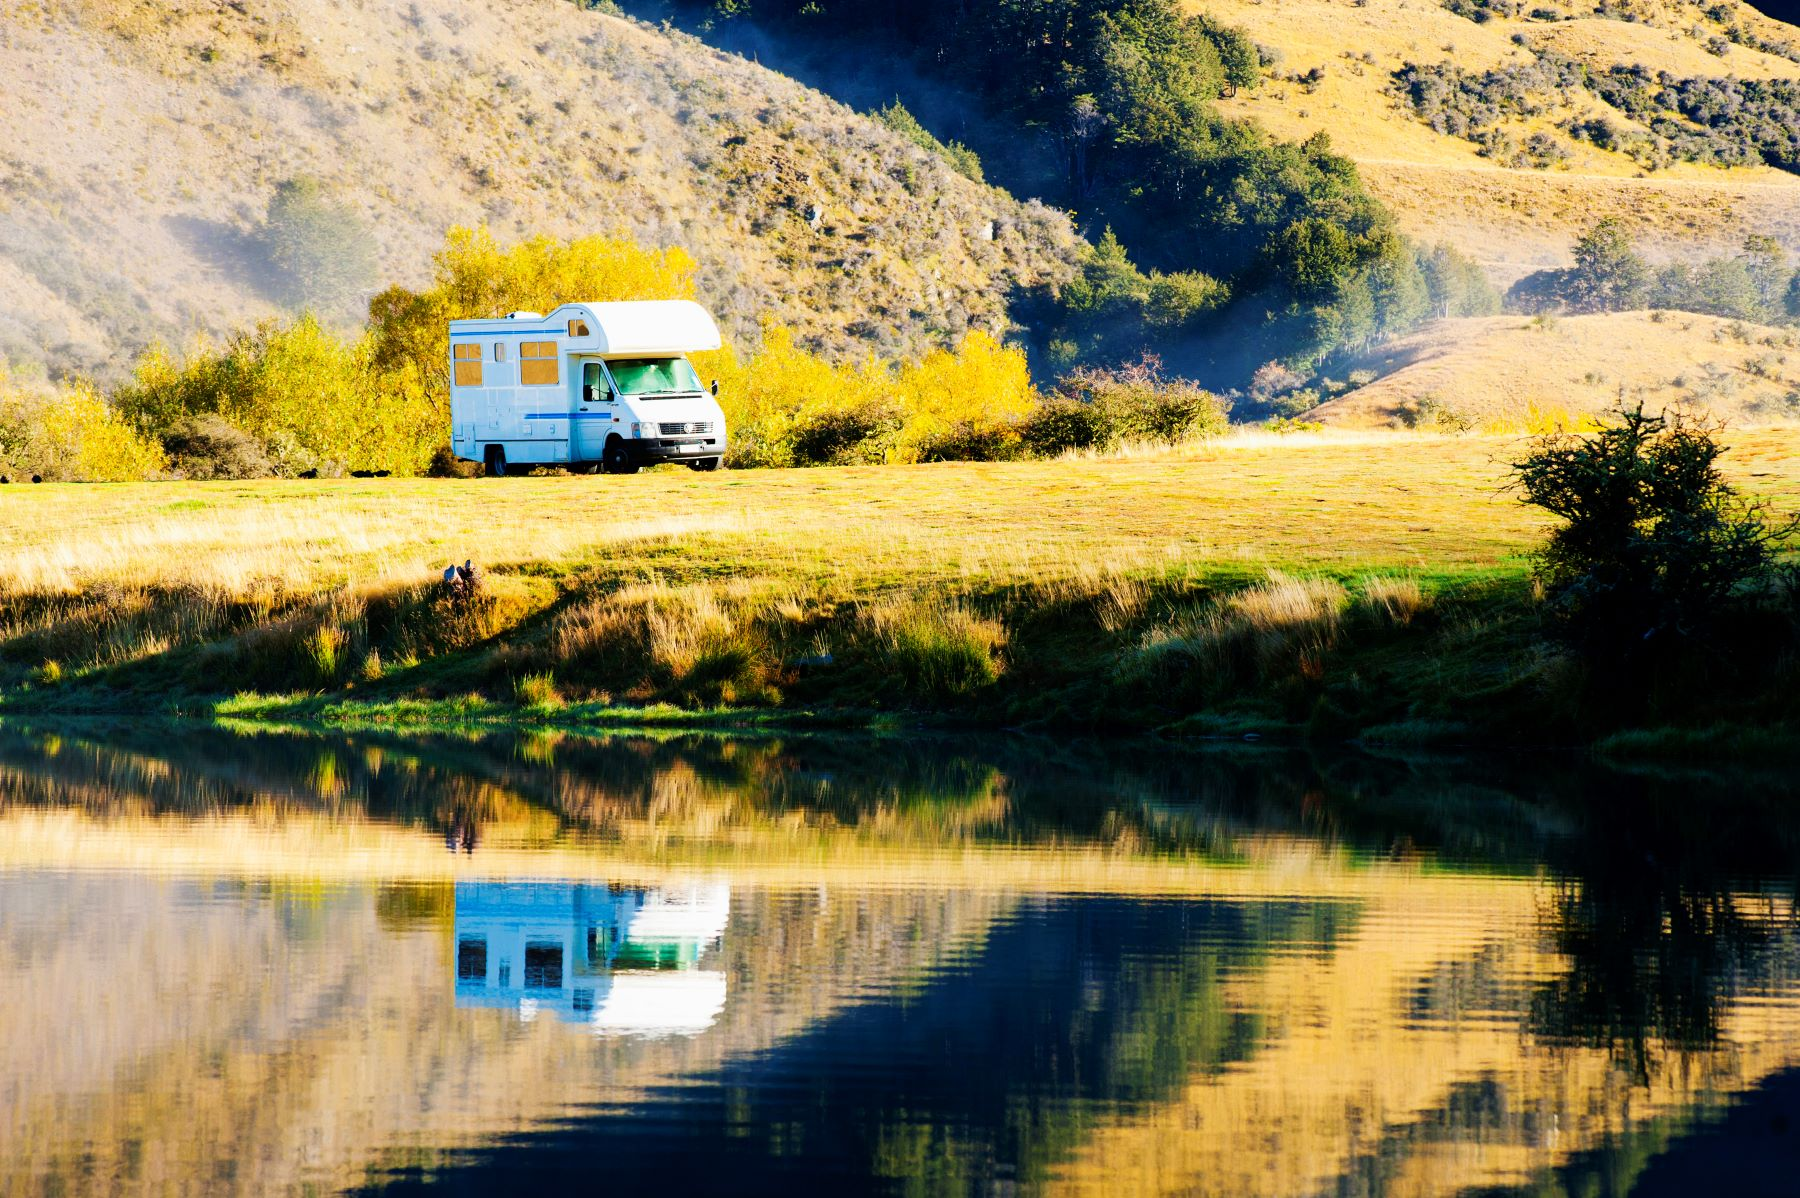 An RV camper parked in at the Lake Moke campsite during fall in Queenstown, South Island, New Zealand